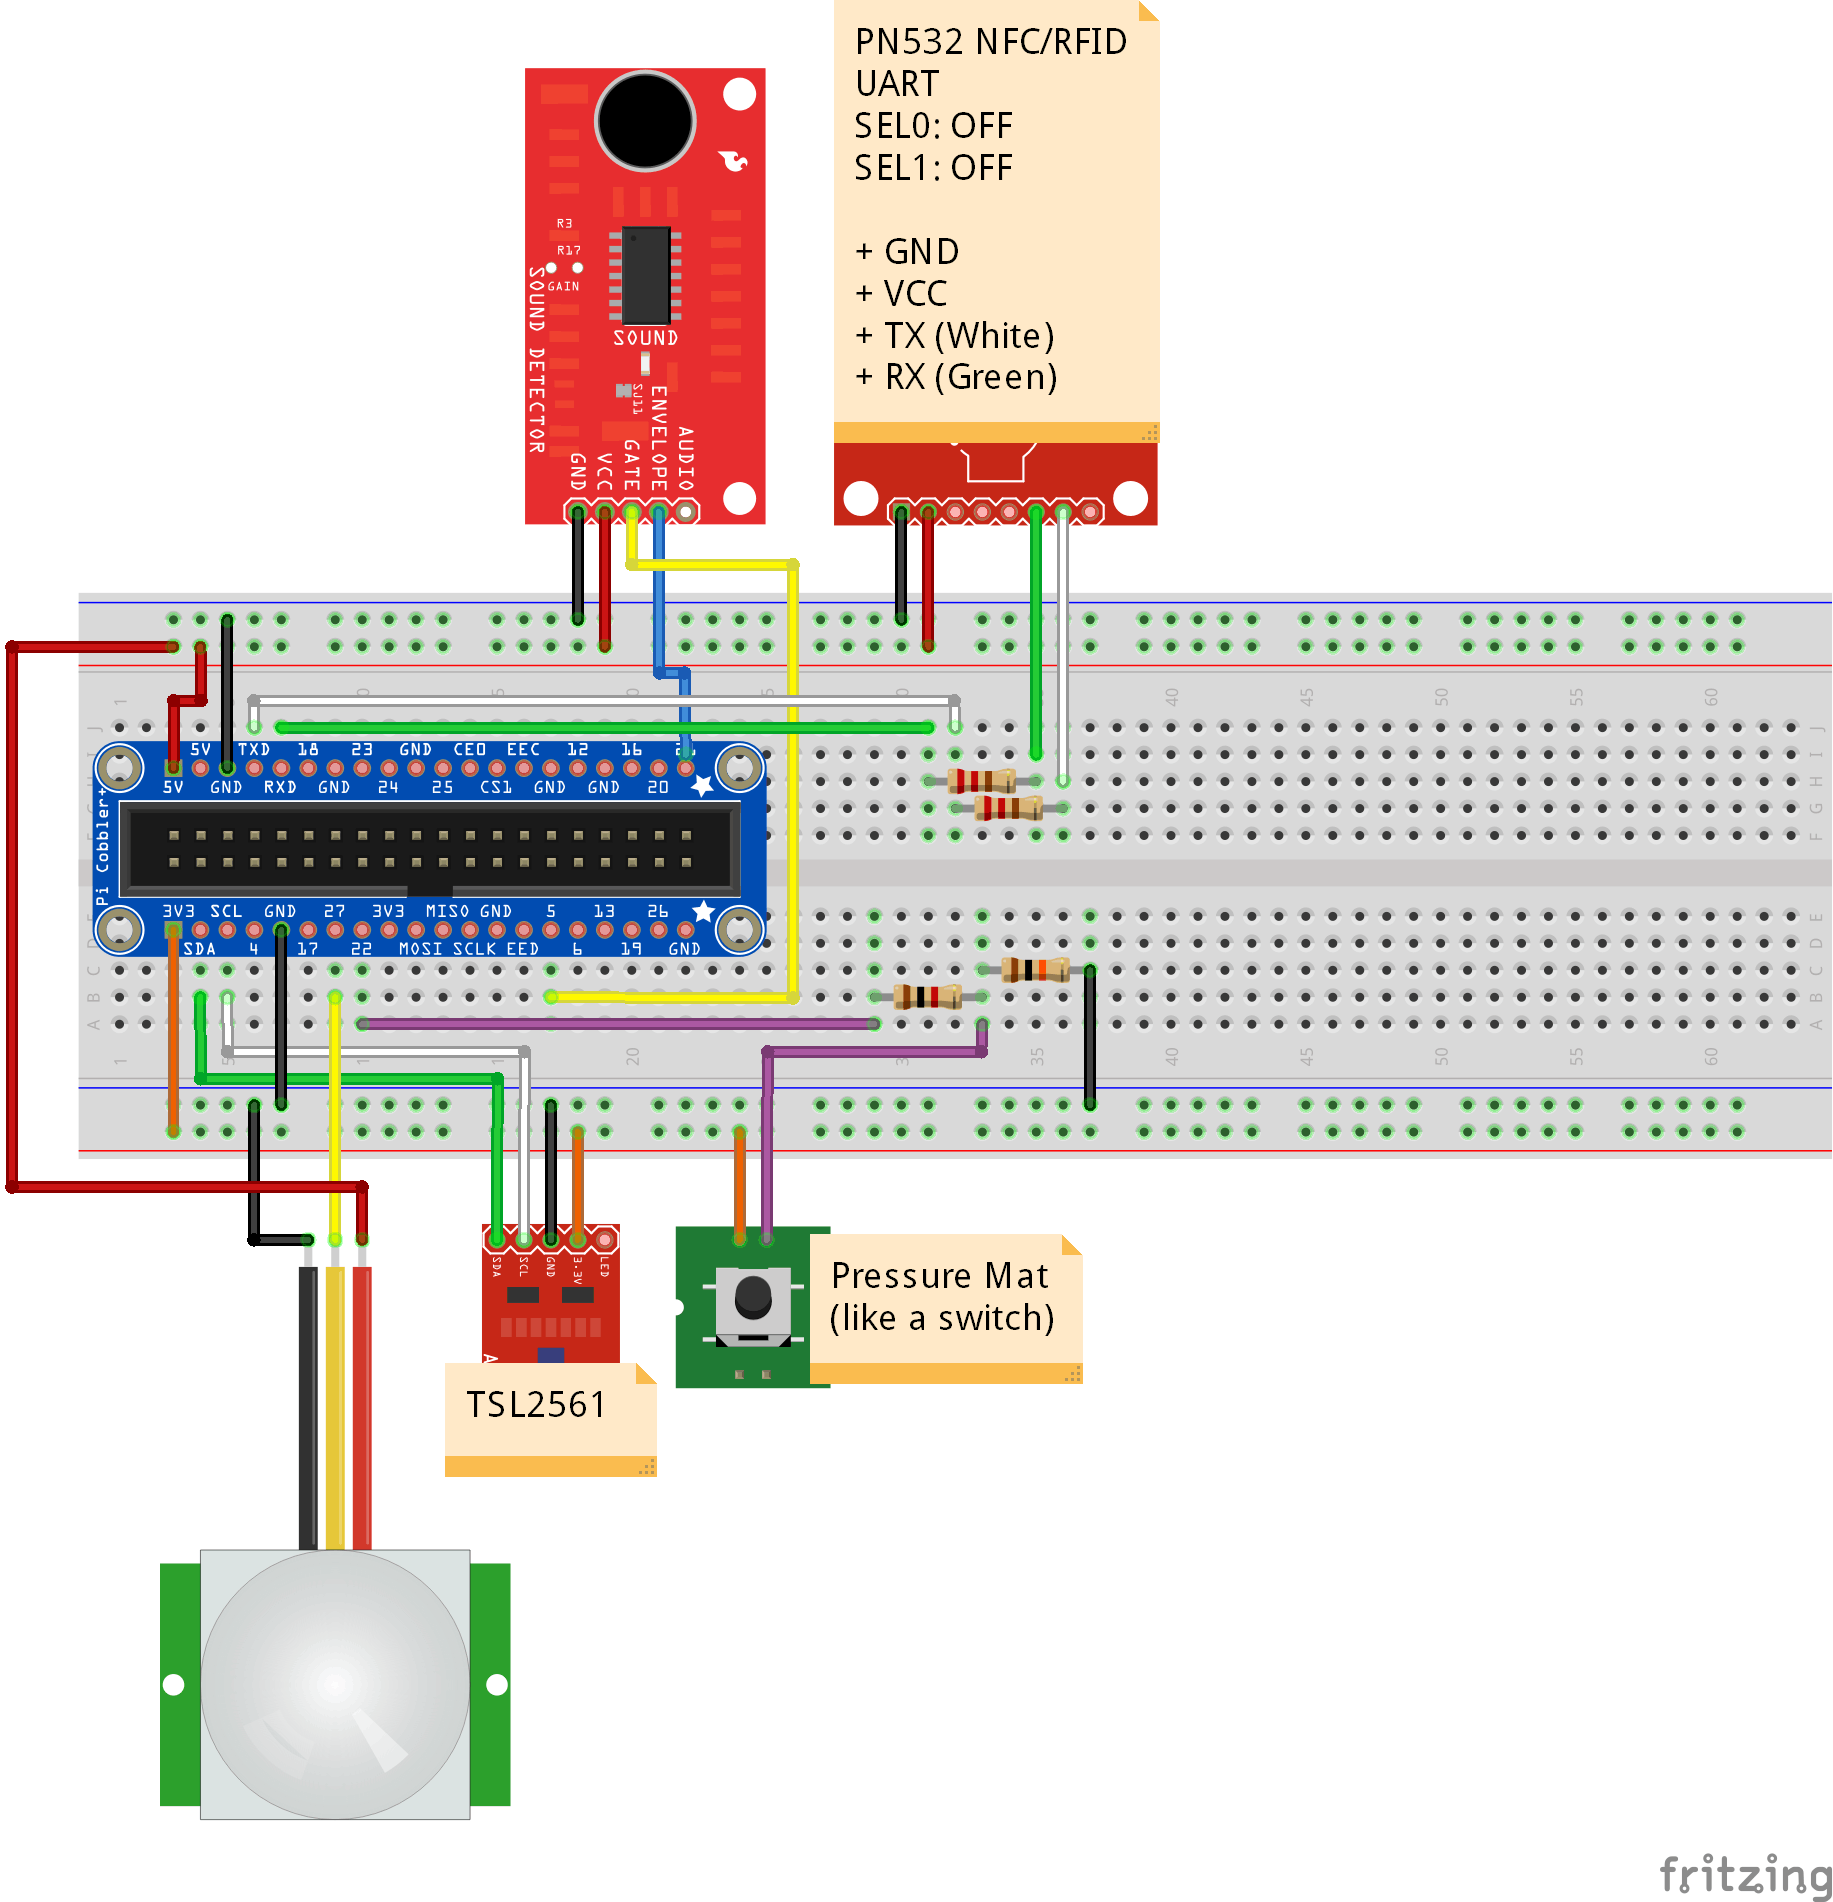 Hardware Overview